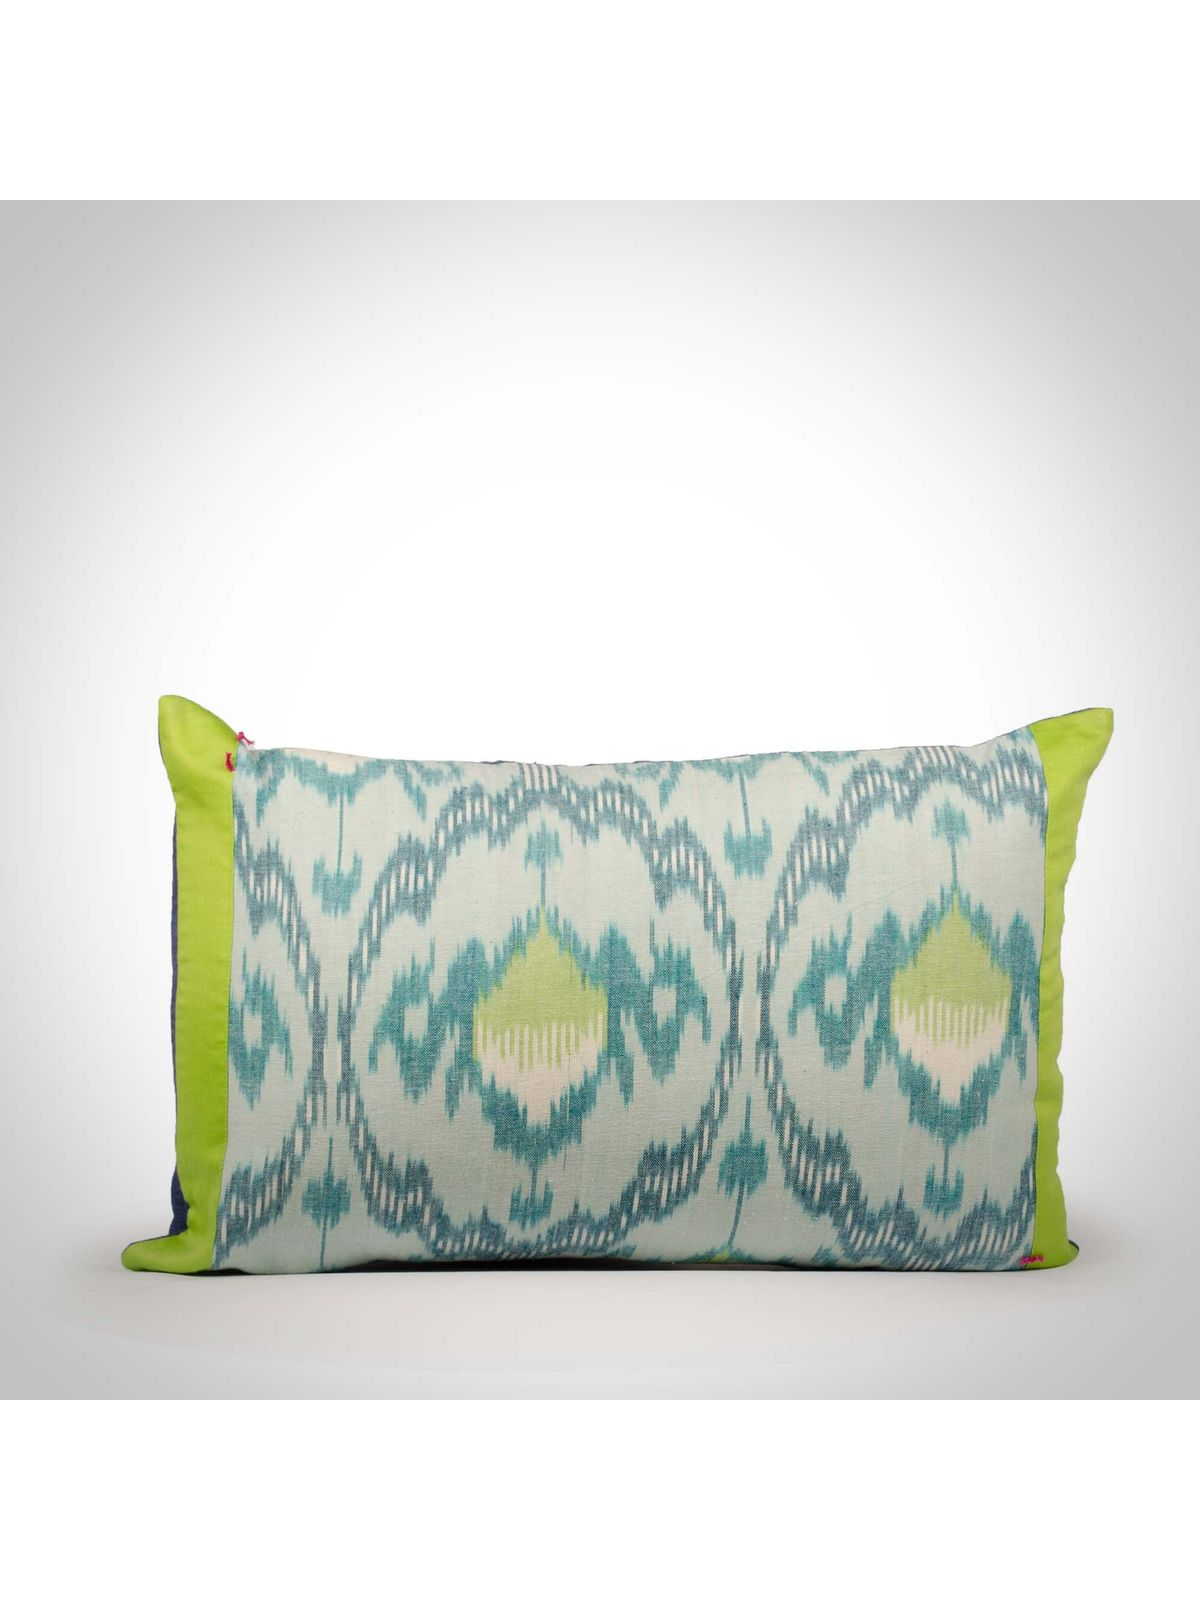 Cotton ikat Cotton Cushion Cover - 12x18Inch